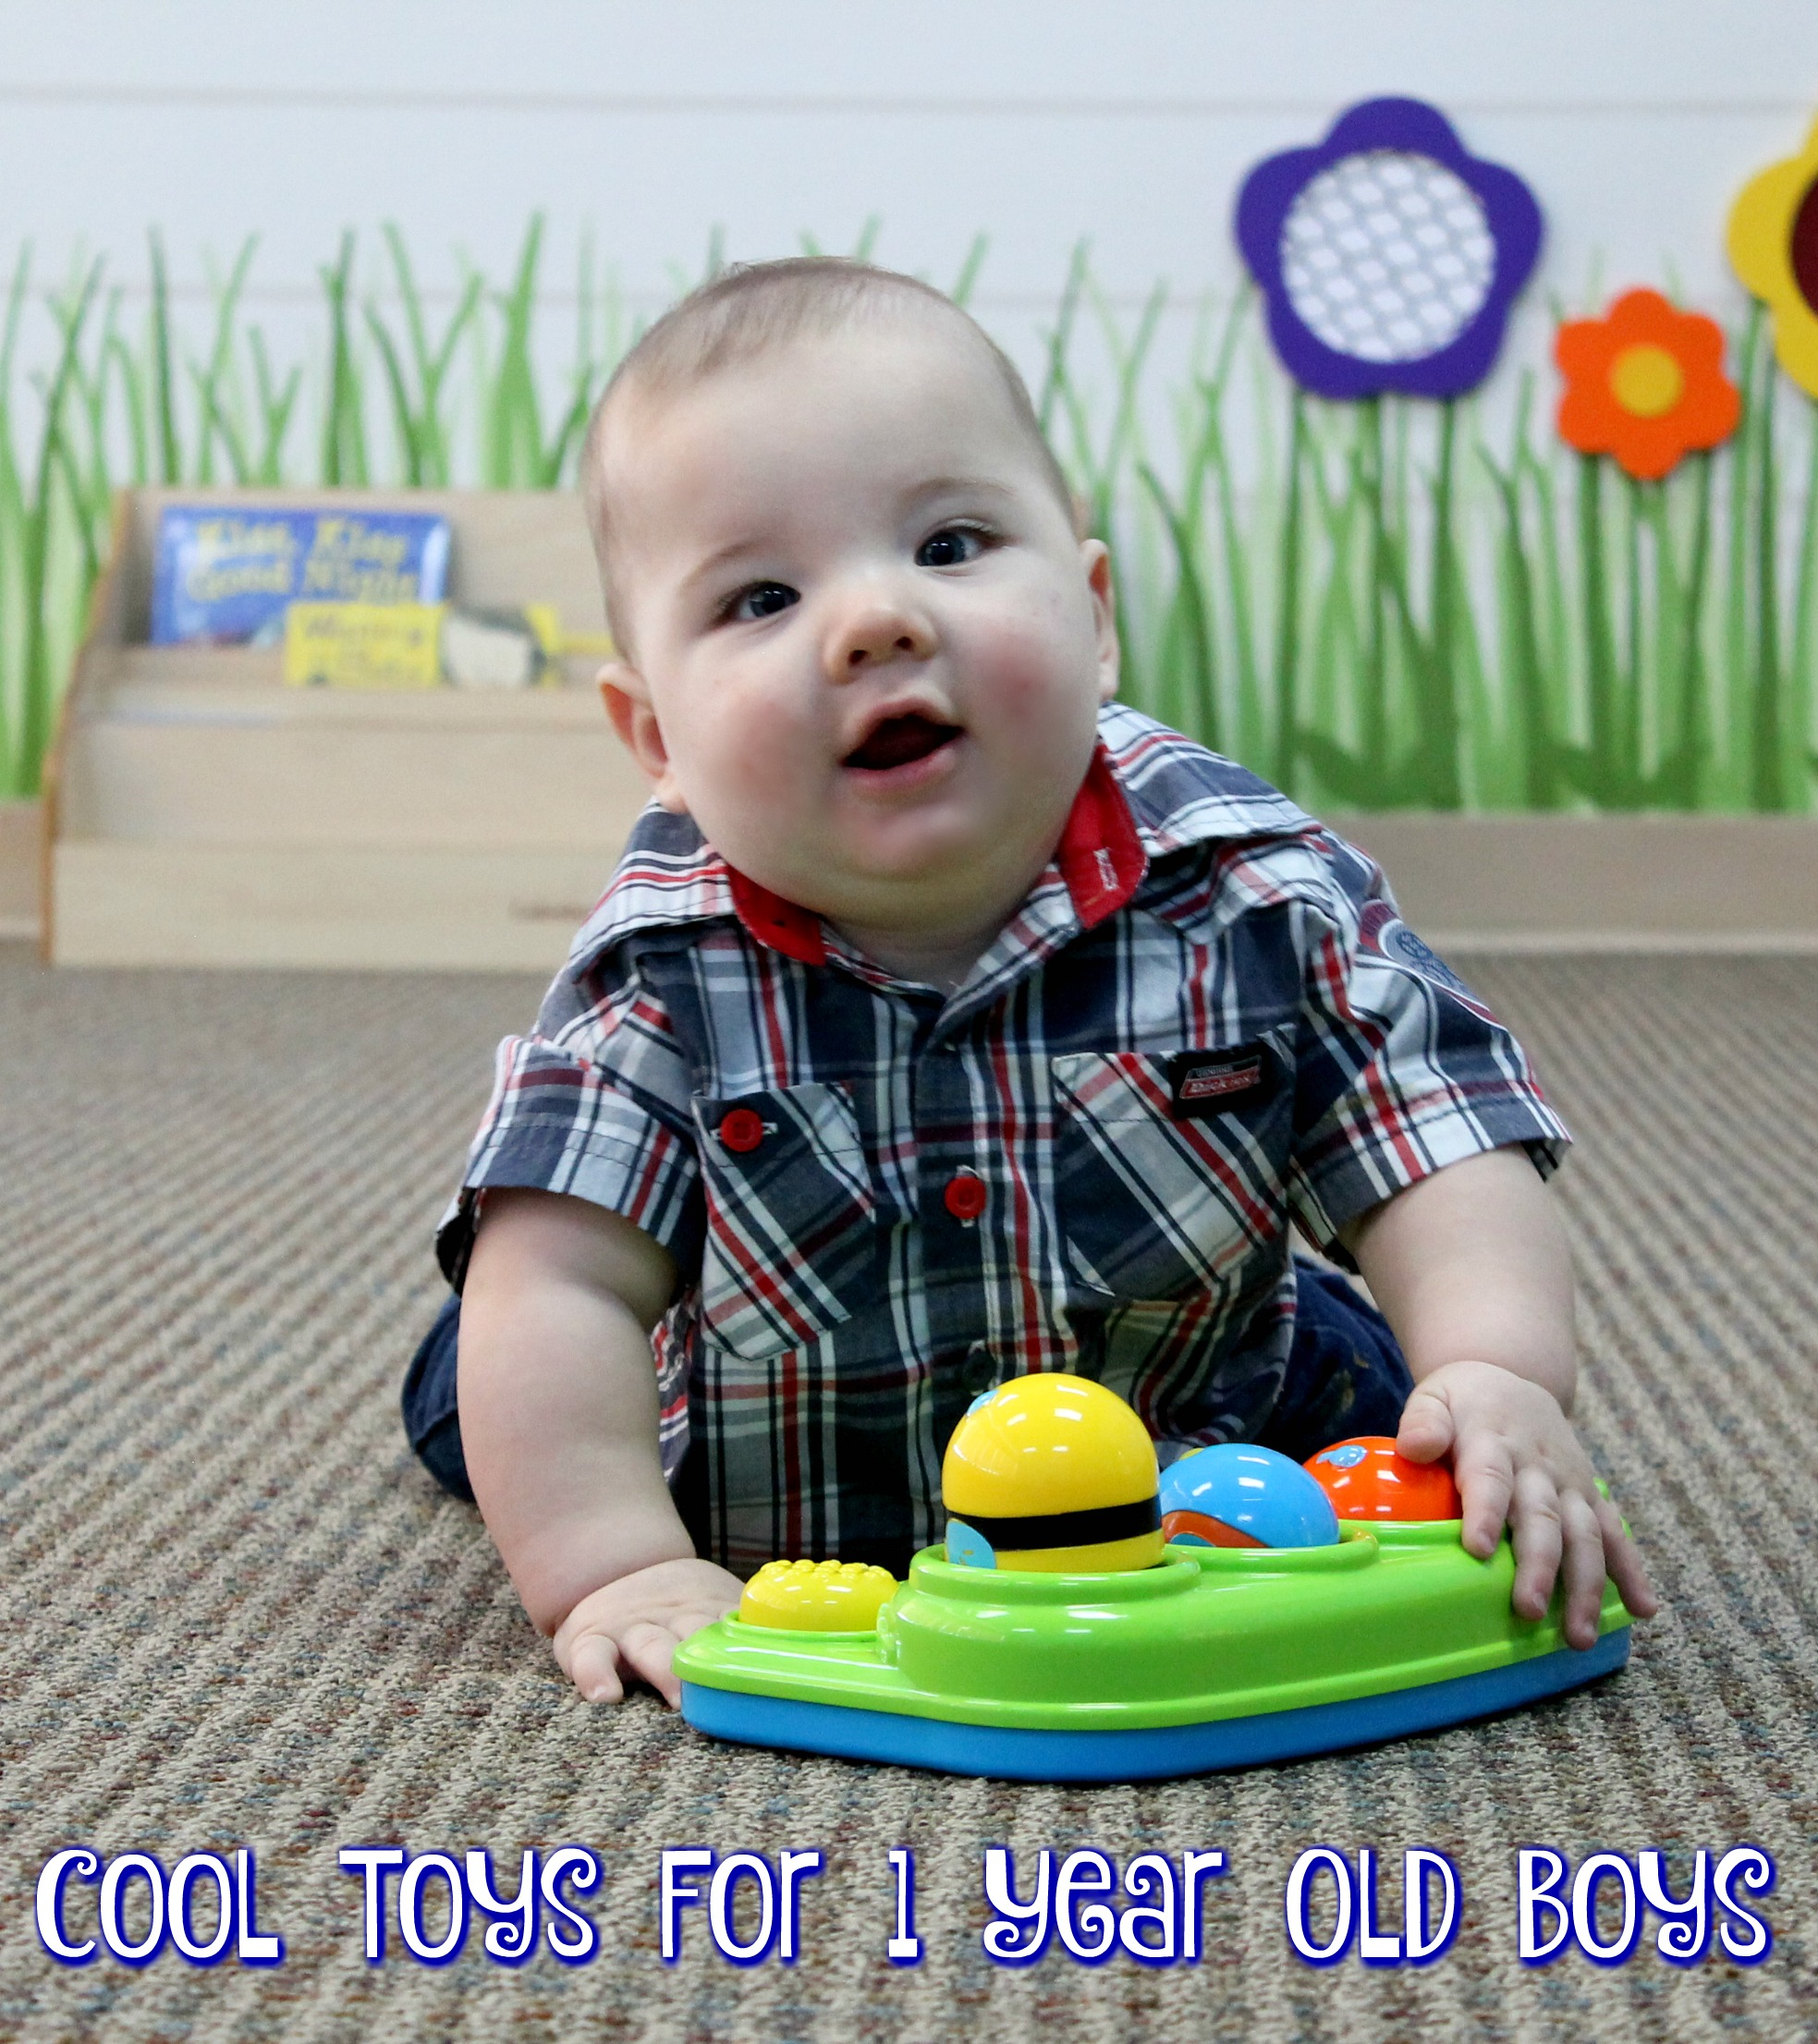 Toys For 1 Year Old : The ultimate list of cool toys for year old boys in